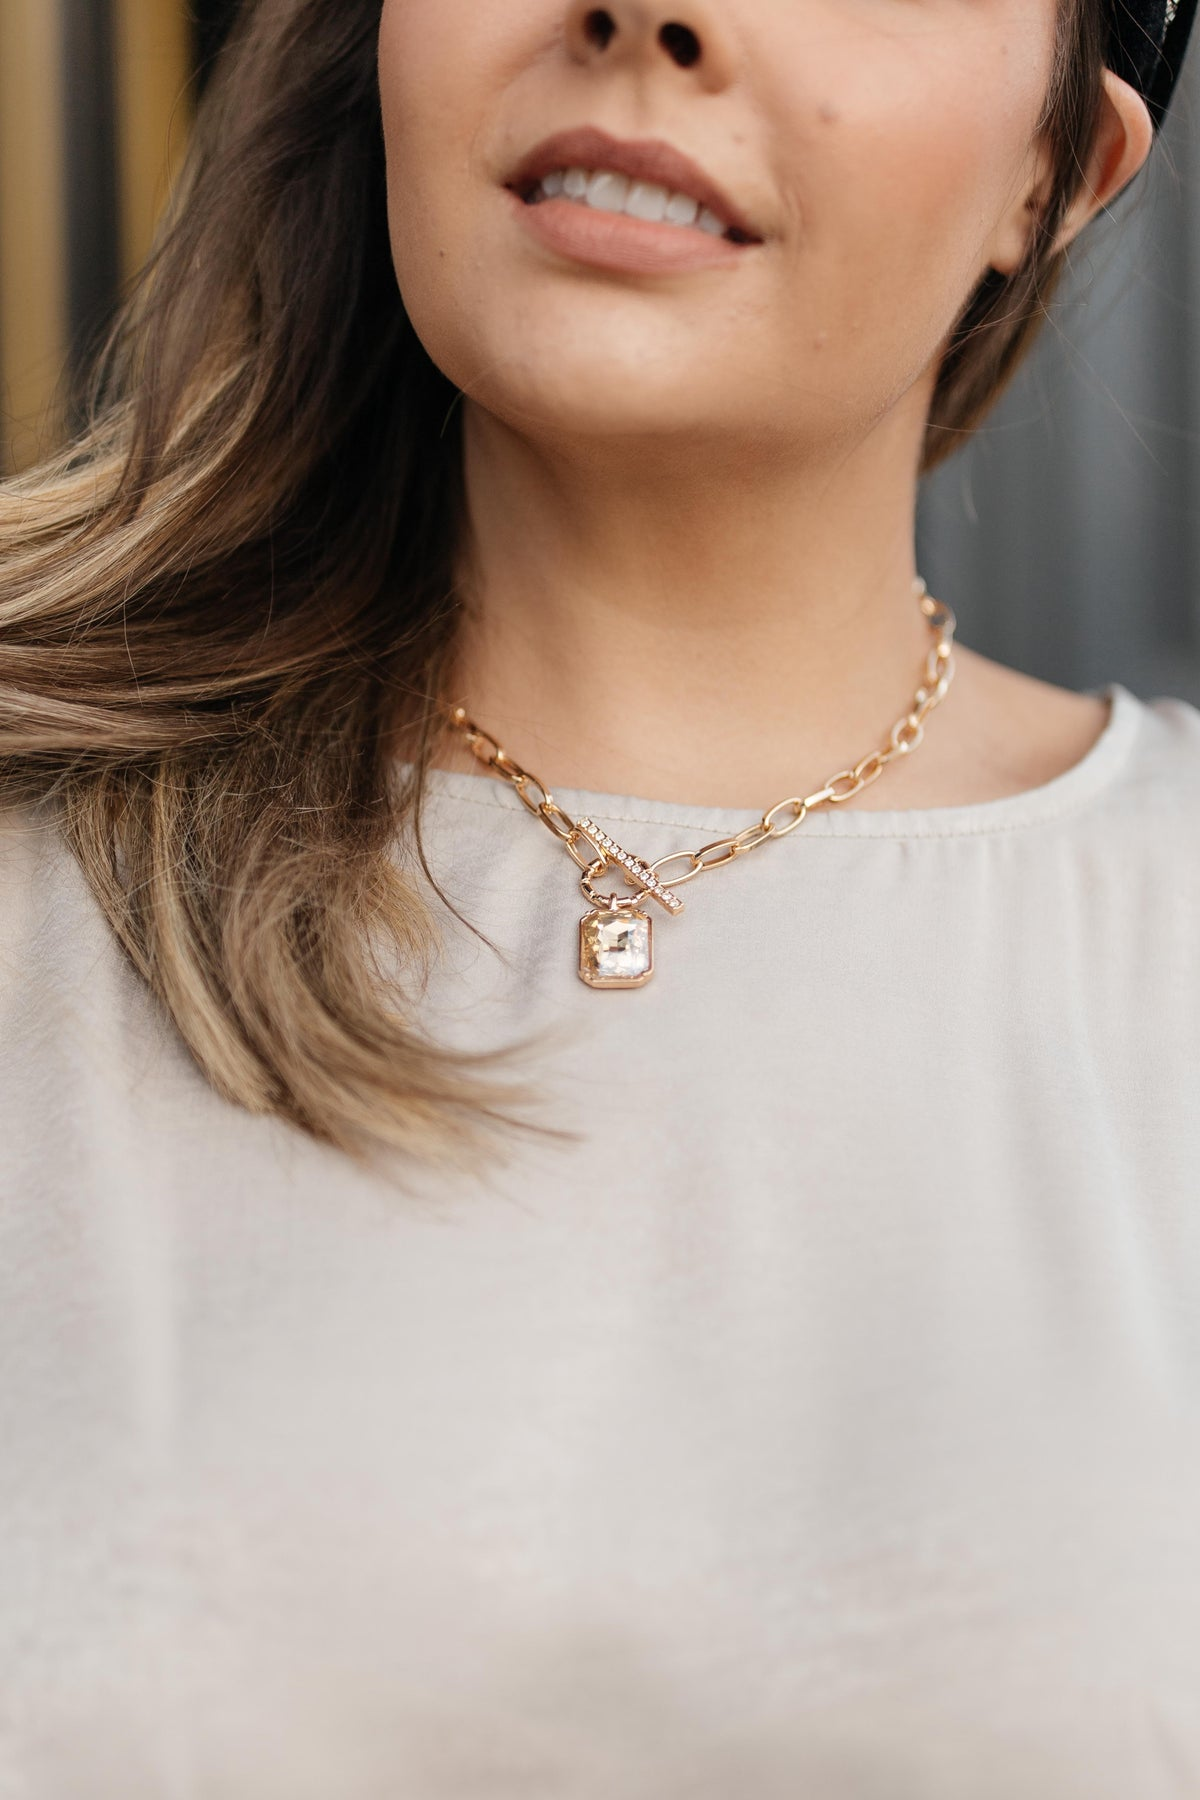 The Jewel Pendant Necklace